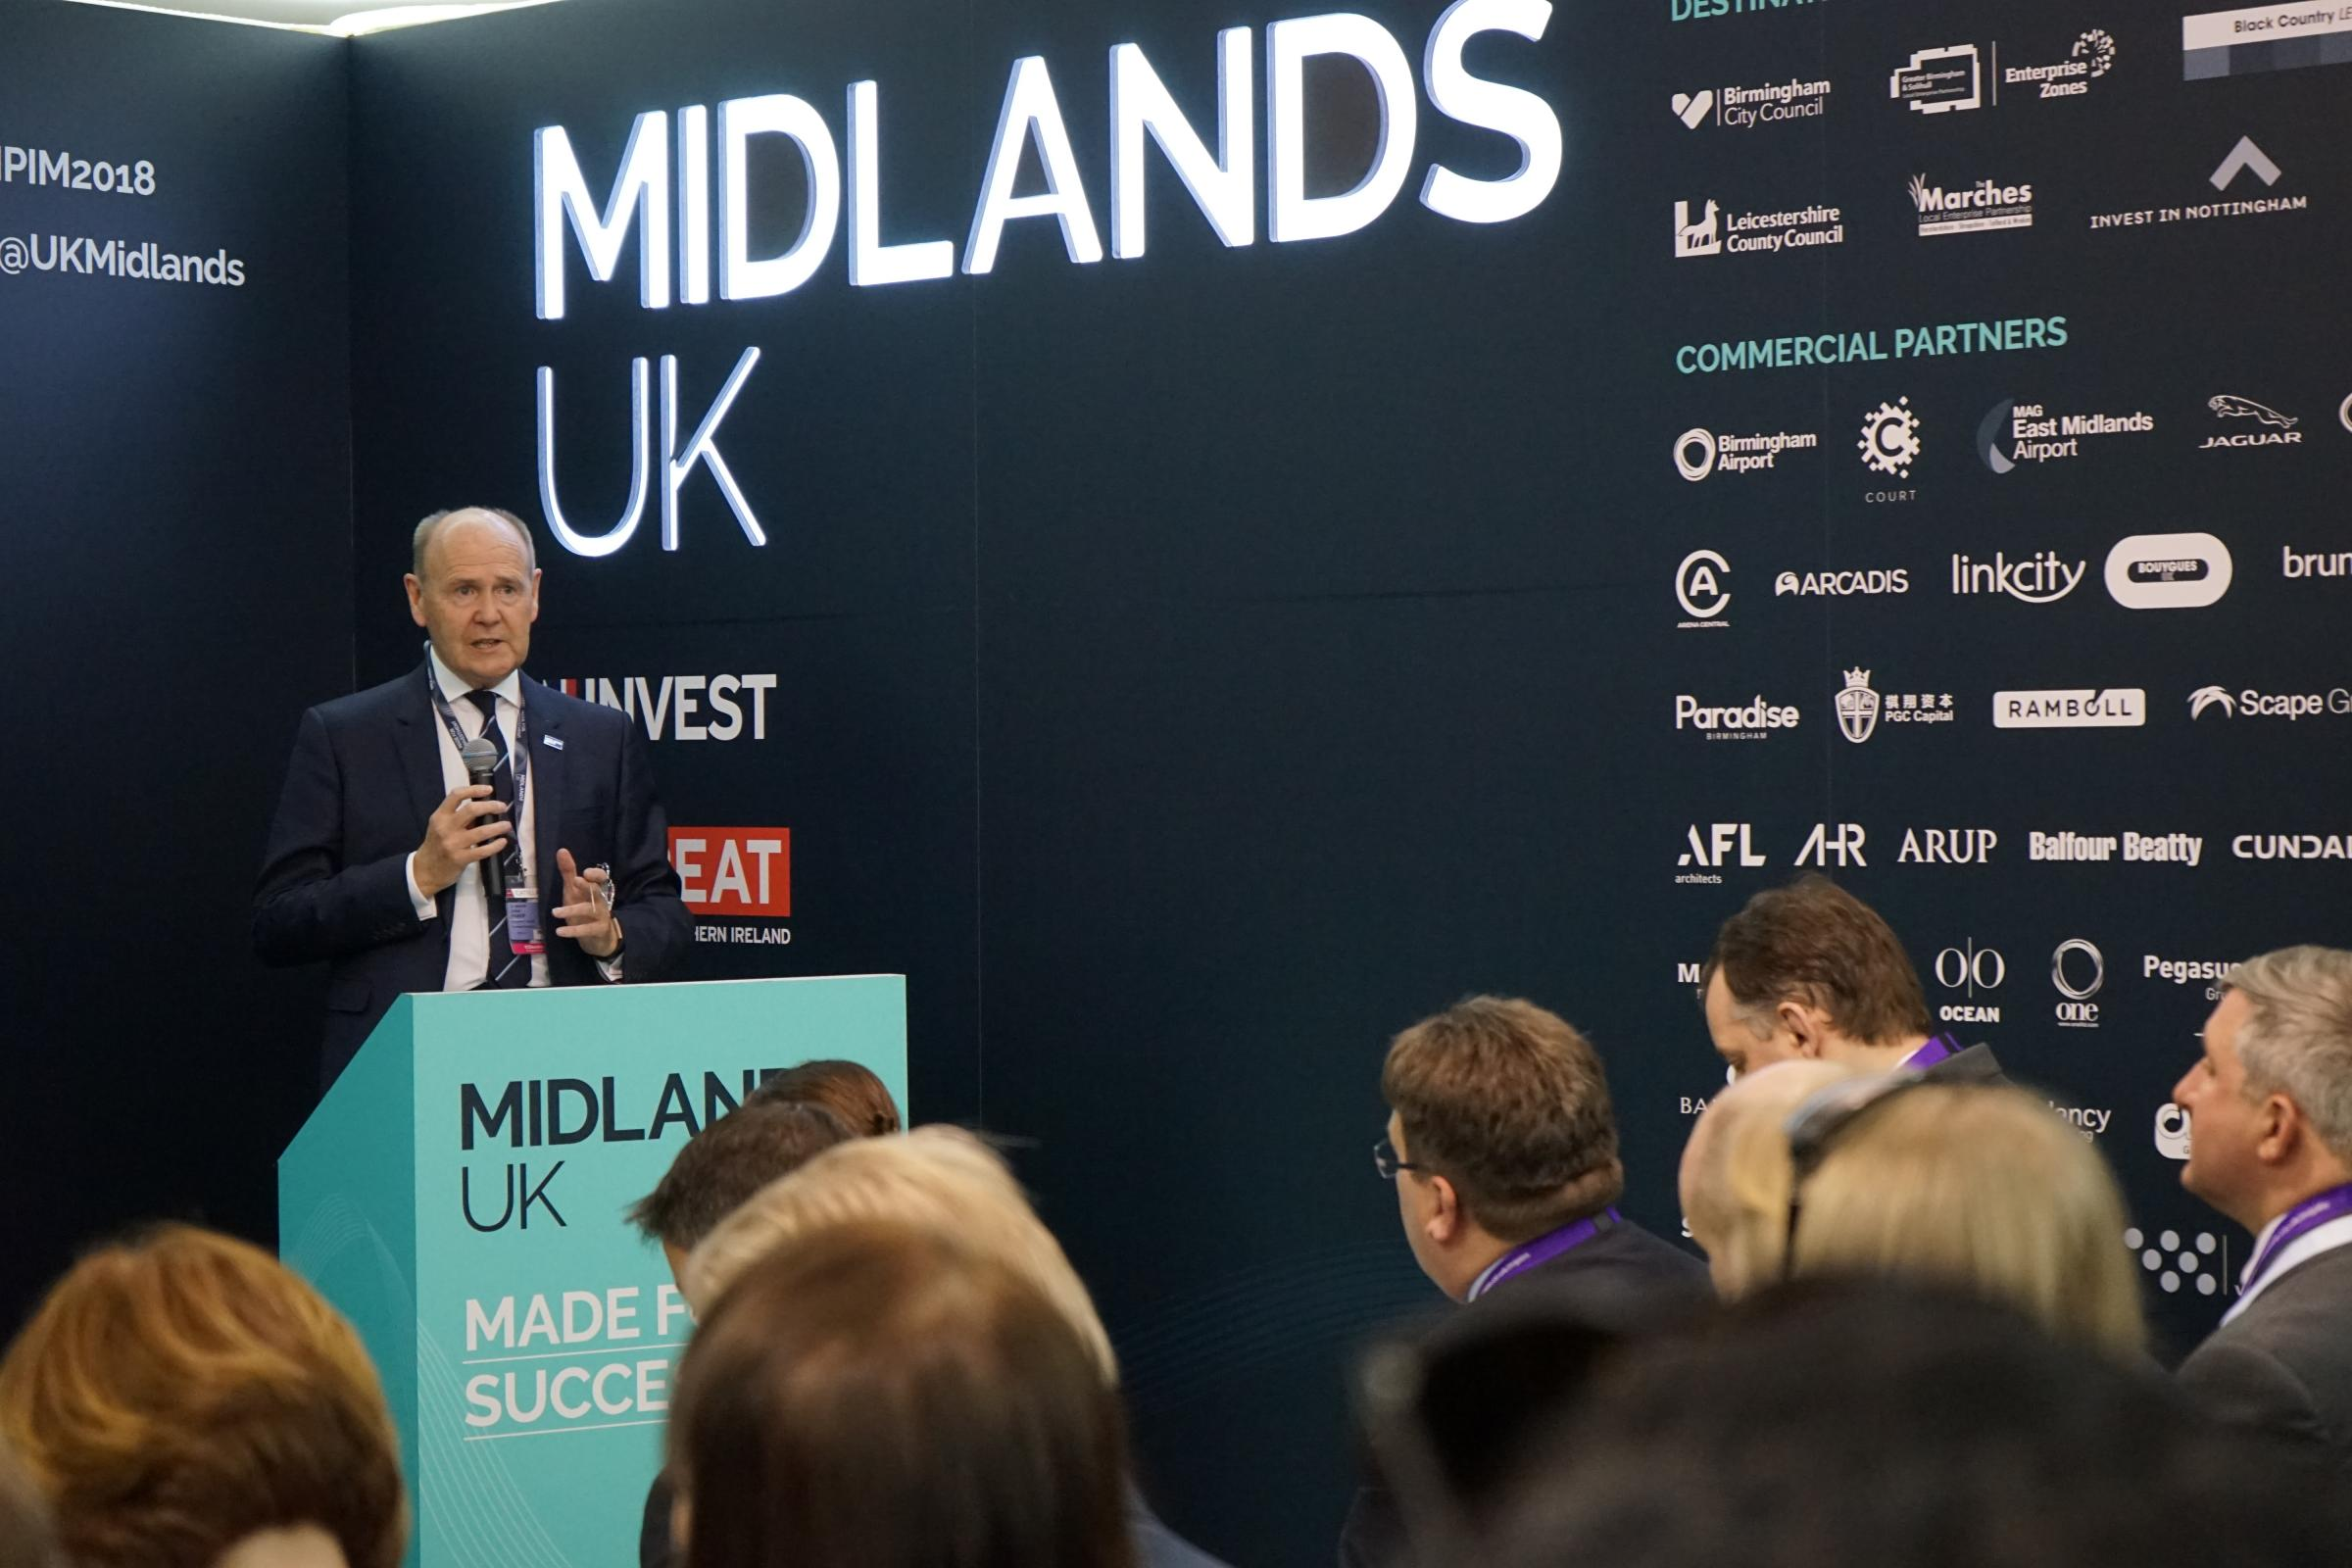 SHOW: Sir John Peace will be leading the Midlands delegation to MIPIM, the world's largest real estate exhibition